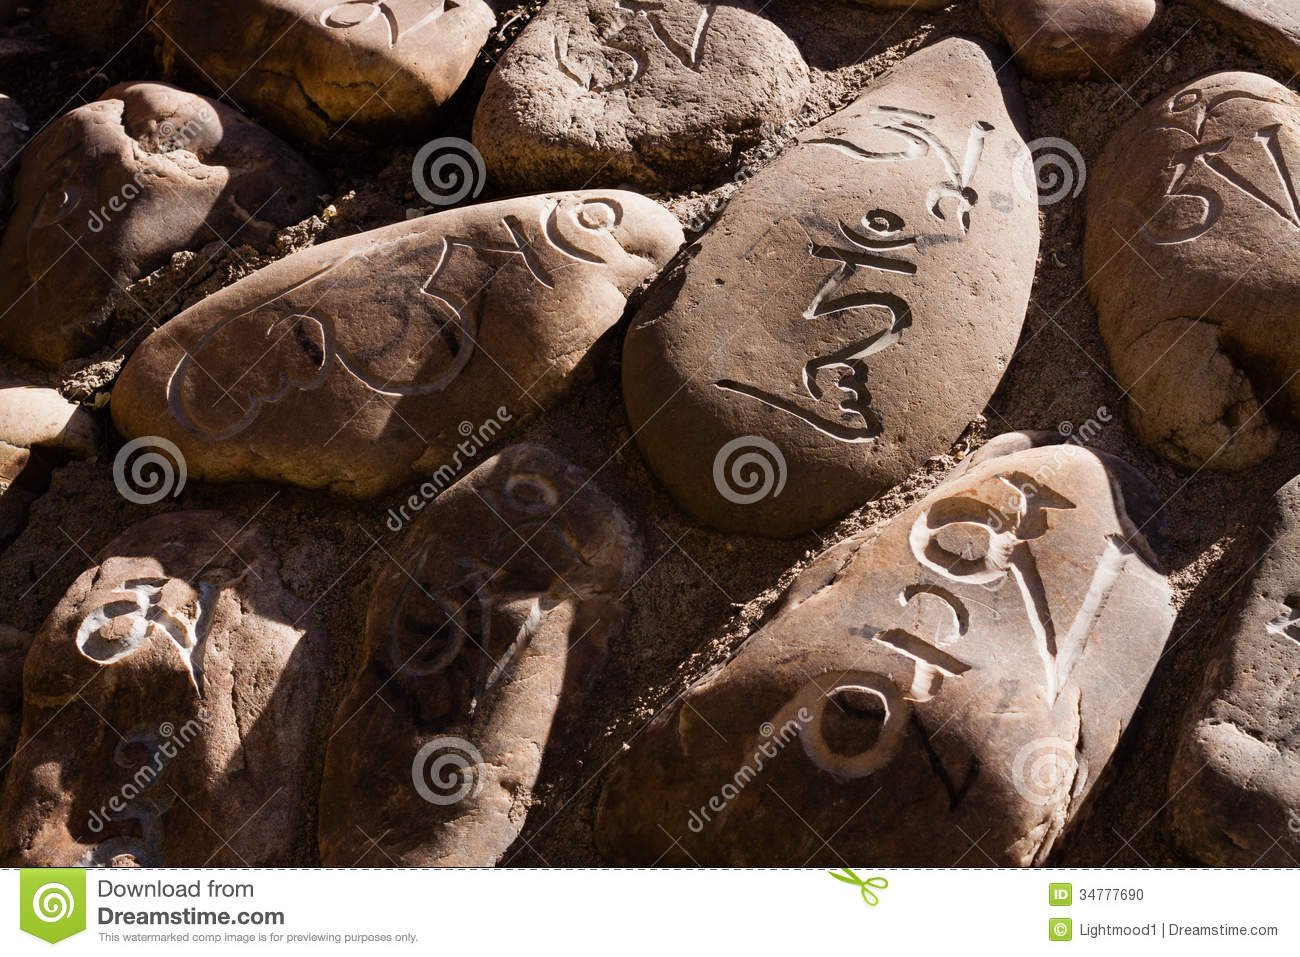 royalty buddhist personals See a rich collection of stock images, vectors, or photos for buddhist wheel of life you can buy on shutterstock explore quality images, photos, art & more.